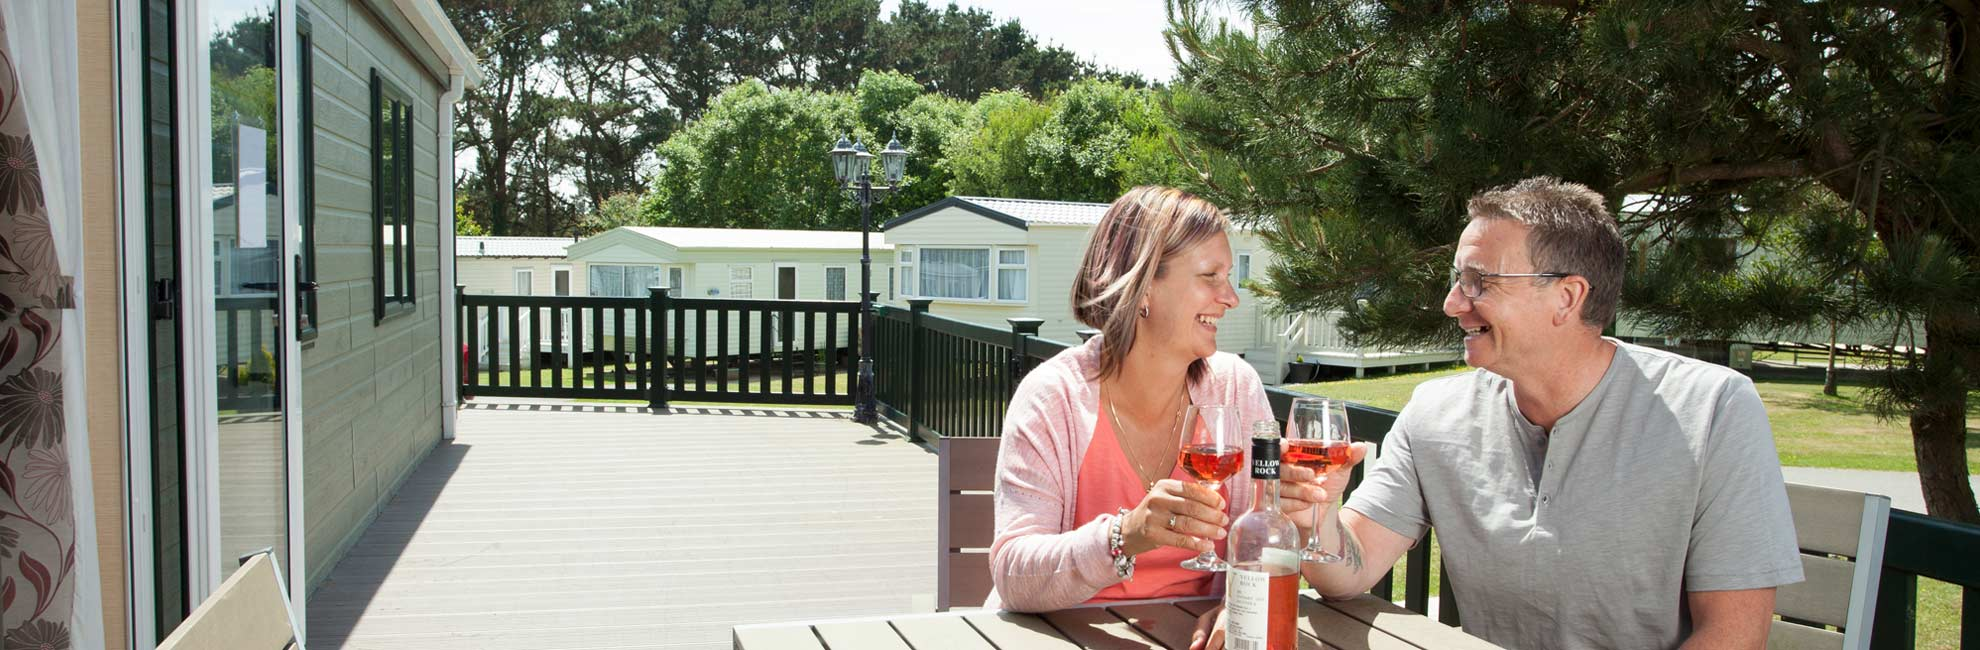 Couple relaxing with wine on their veranda